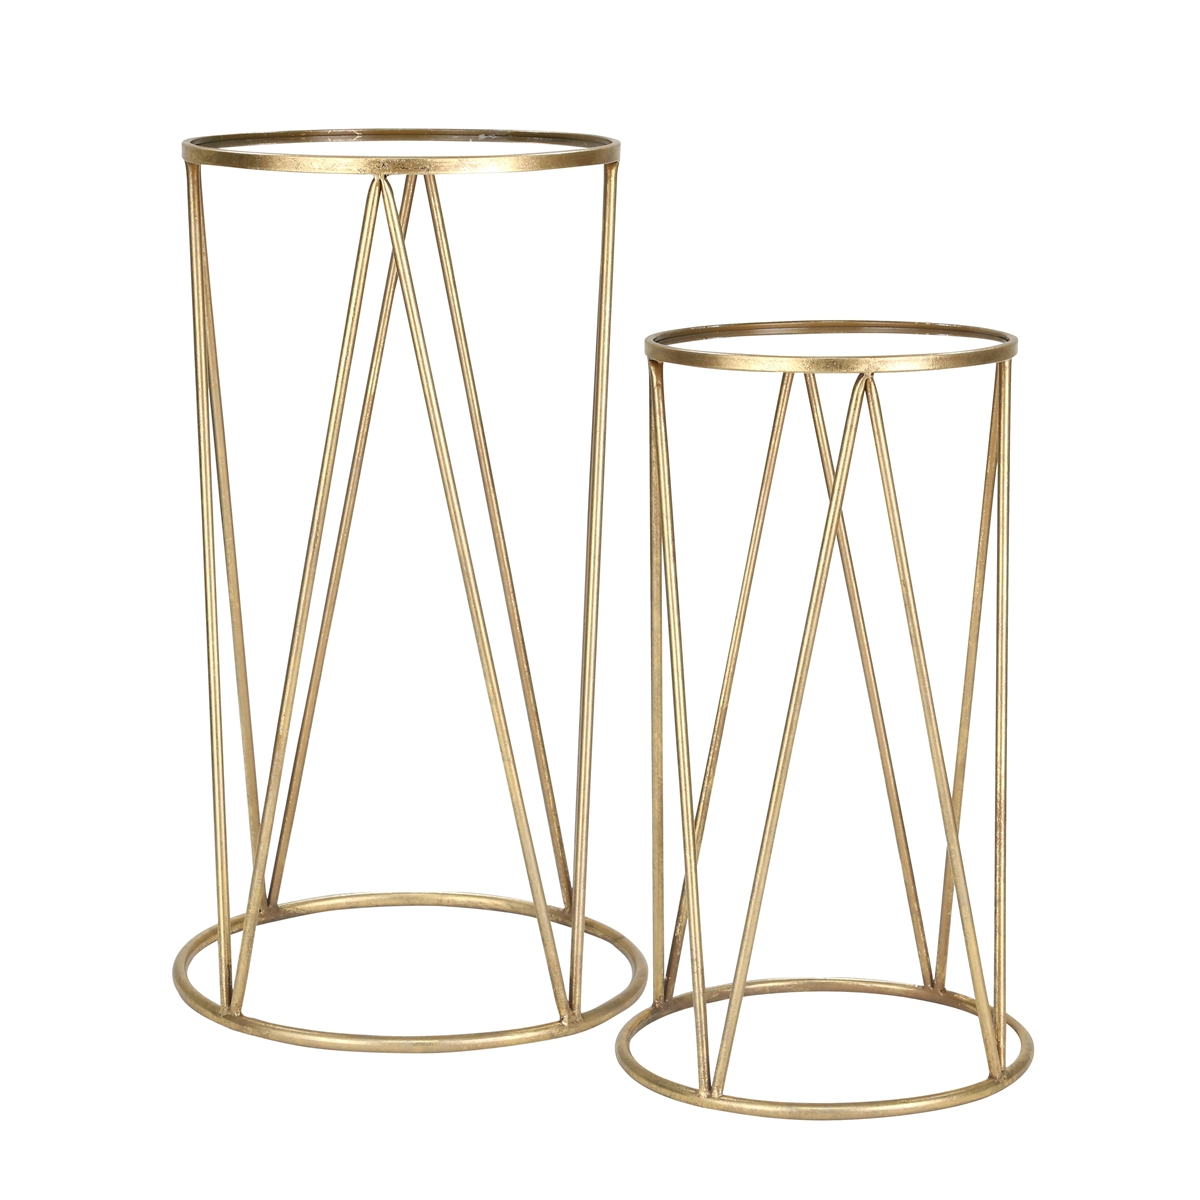 metal mirror accent tables gold sagebrook home table log for pricing and availability material ikea small storage with drawer shelf plastic patio side outdoor dining furniture